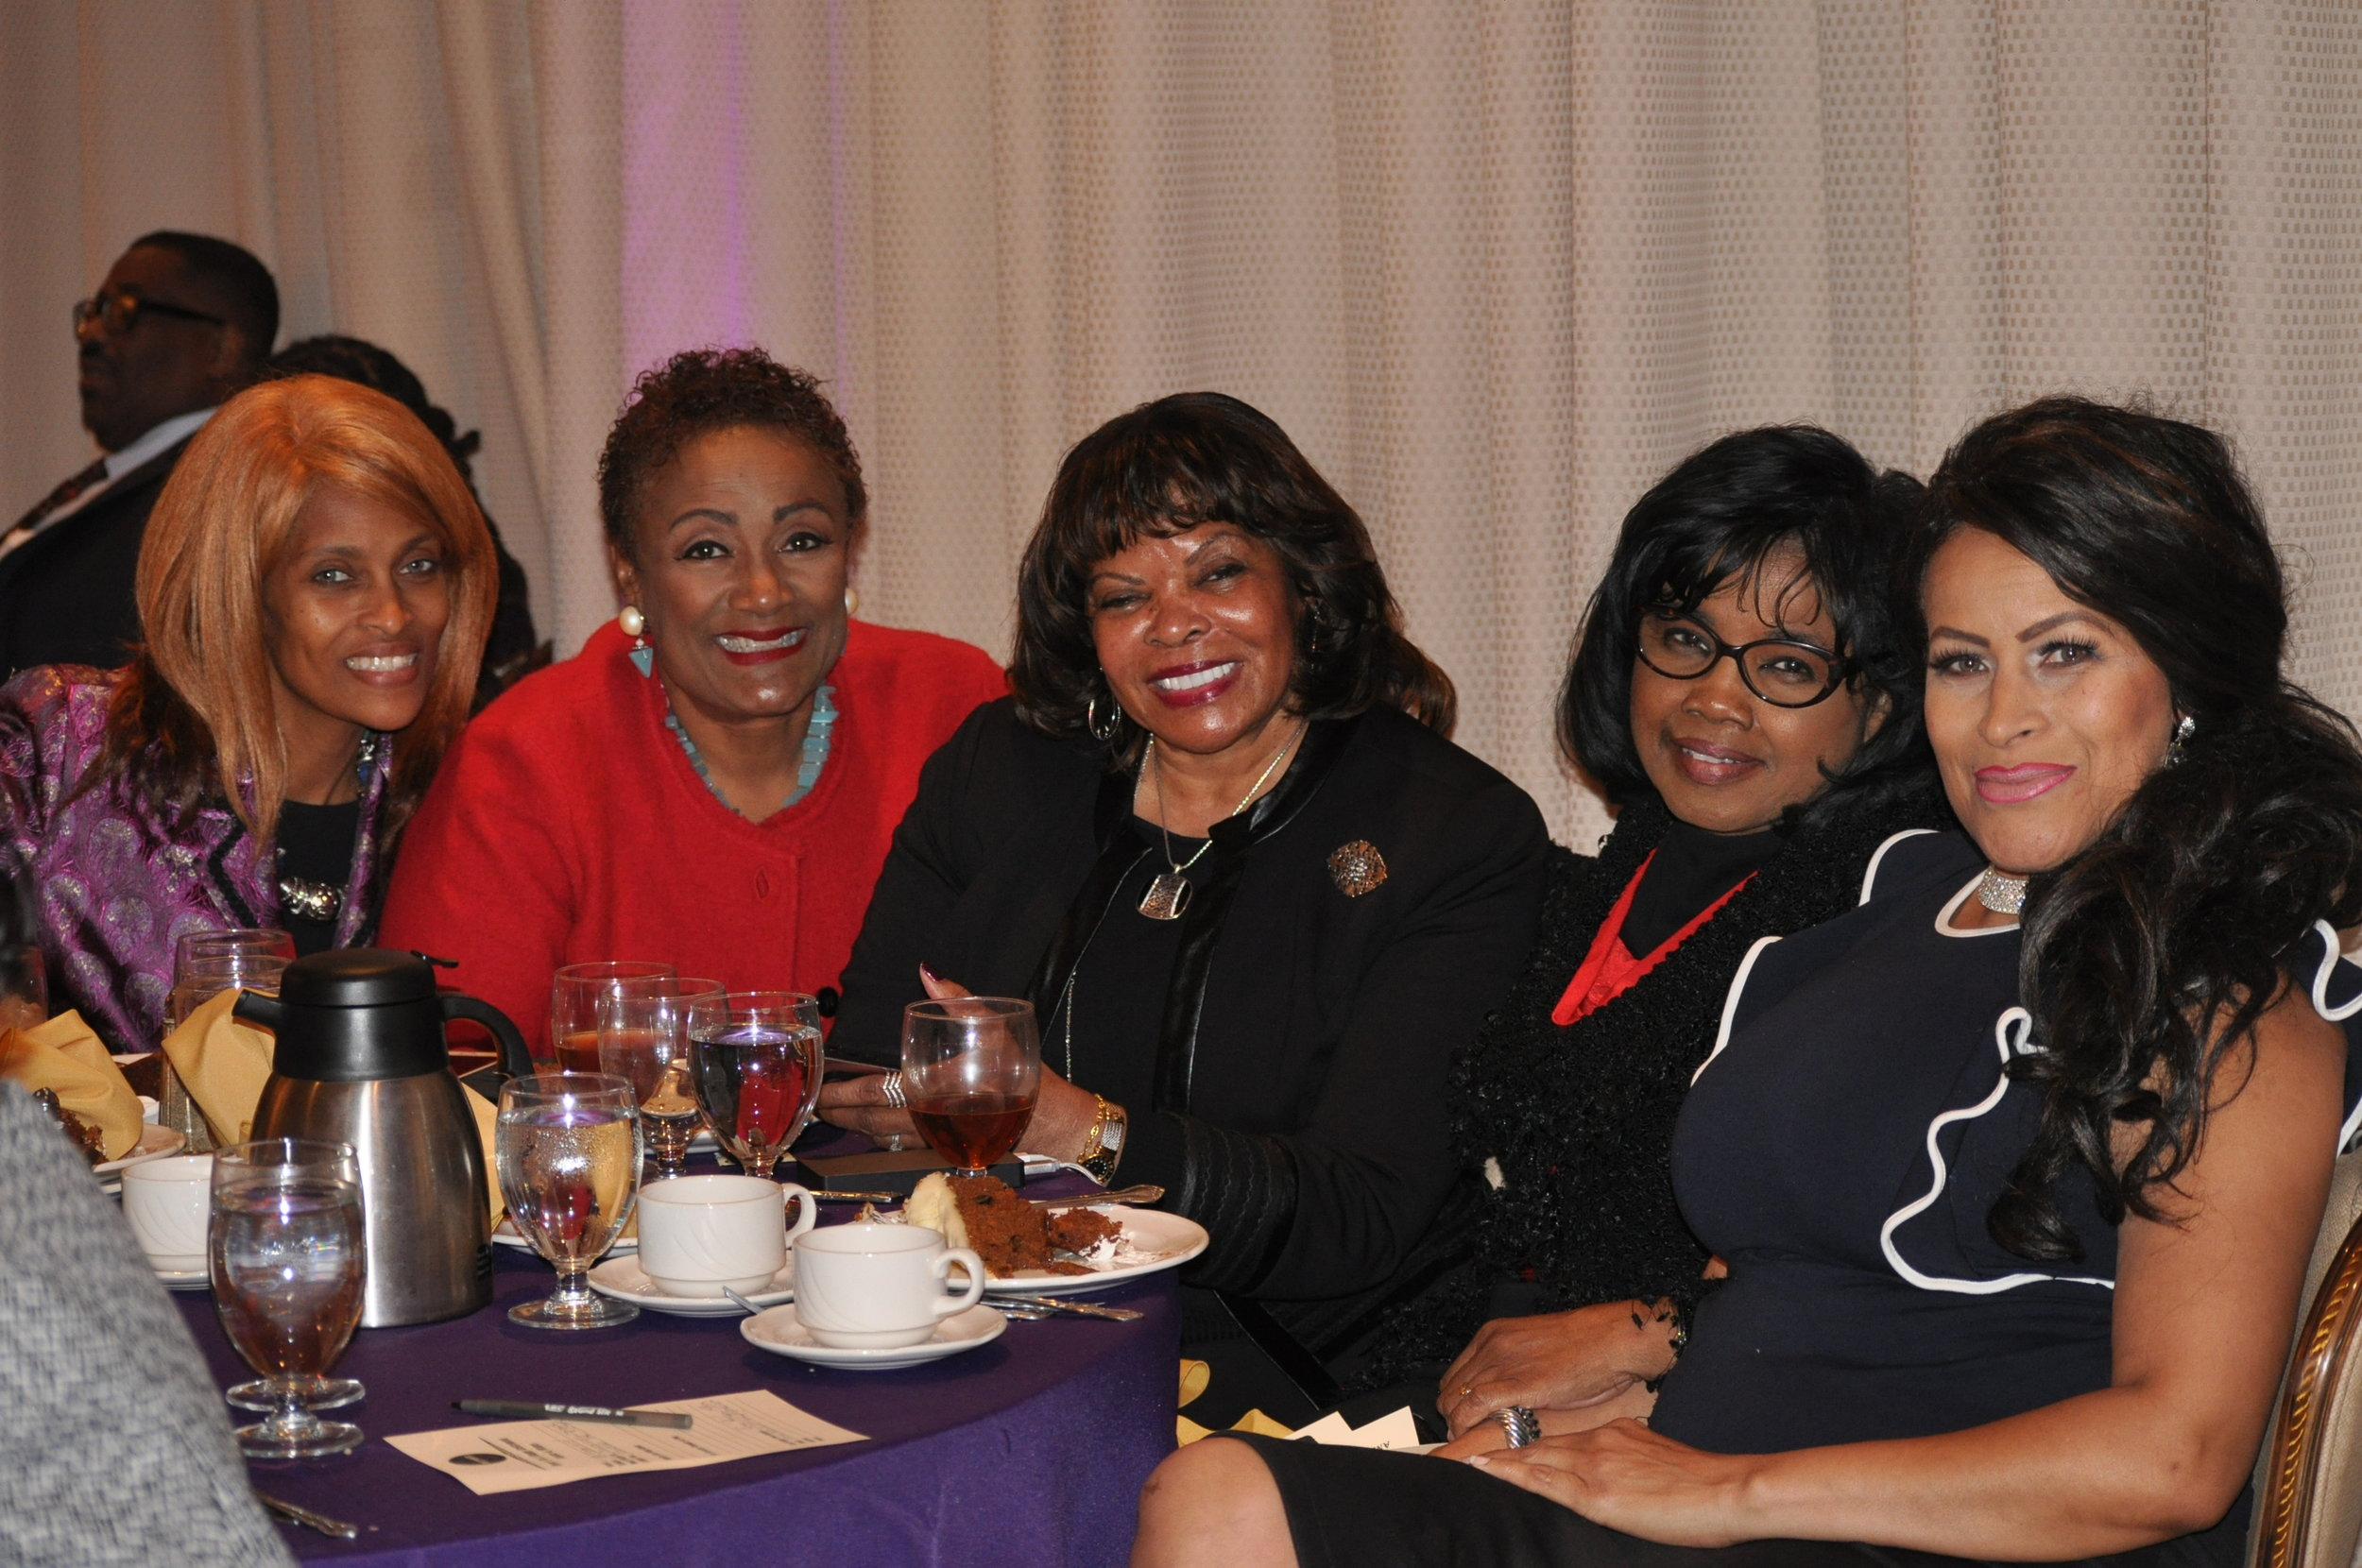 Members of Sisters4Sisters Network. PHOTO: RAOUL DENNIS // PRINCE GEORGE'S SUITE MAGAZINE & MEDIA